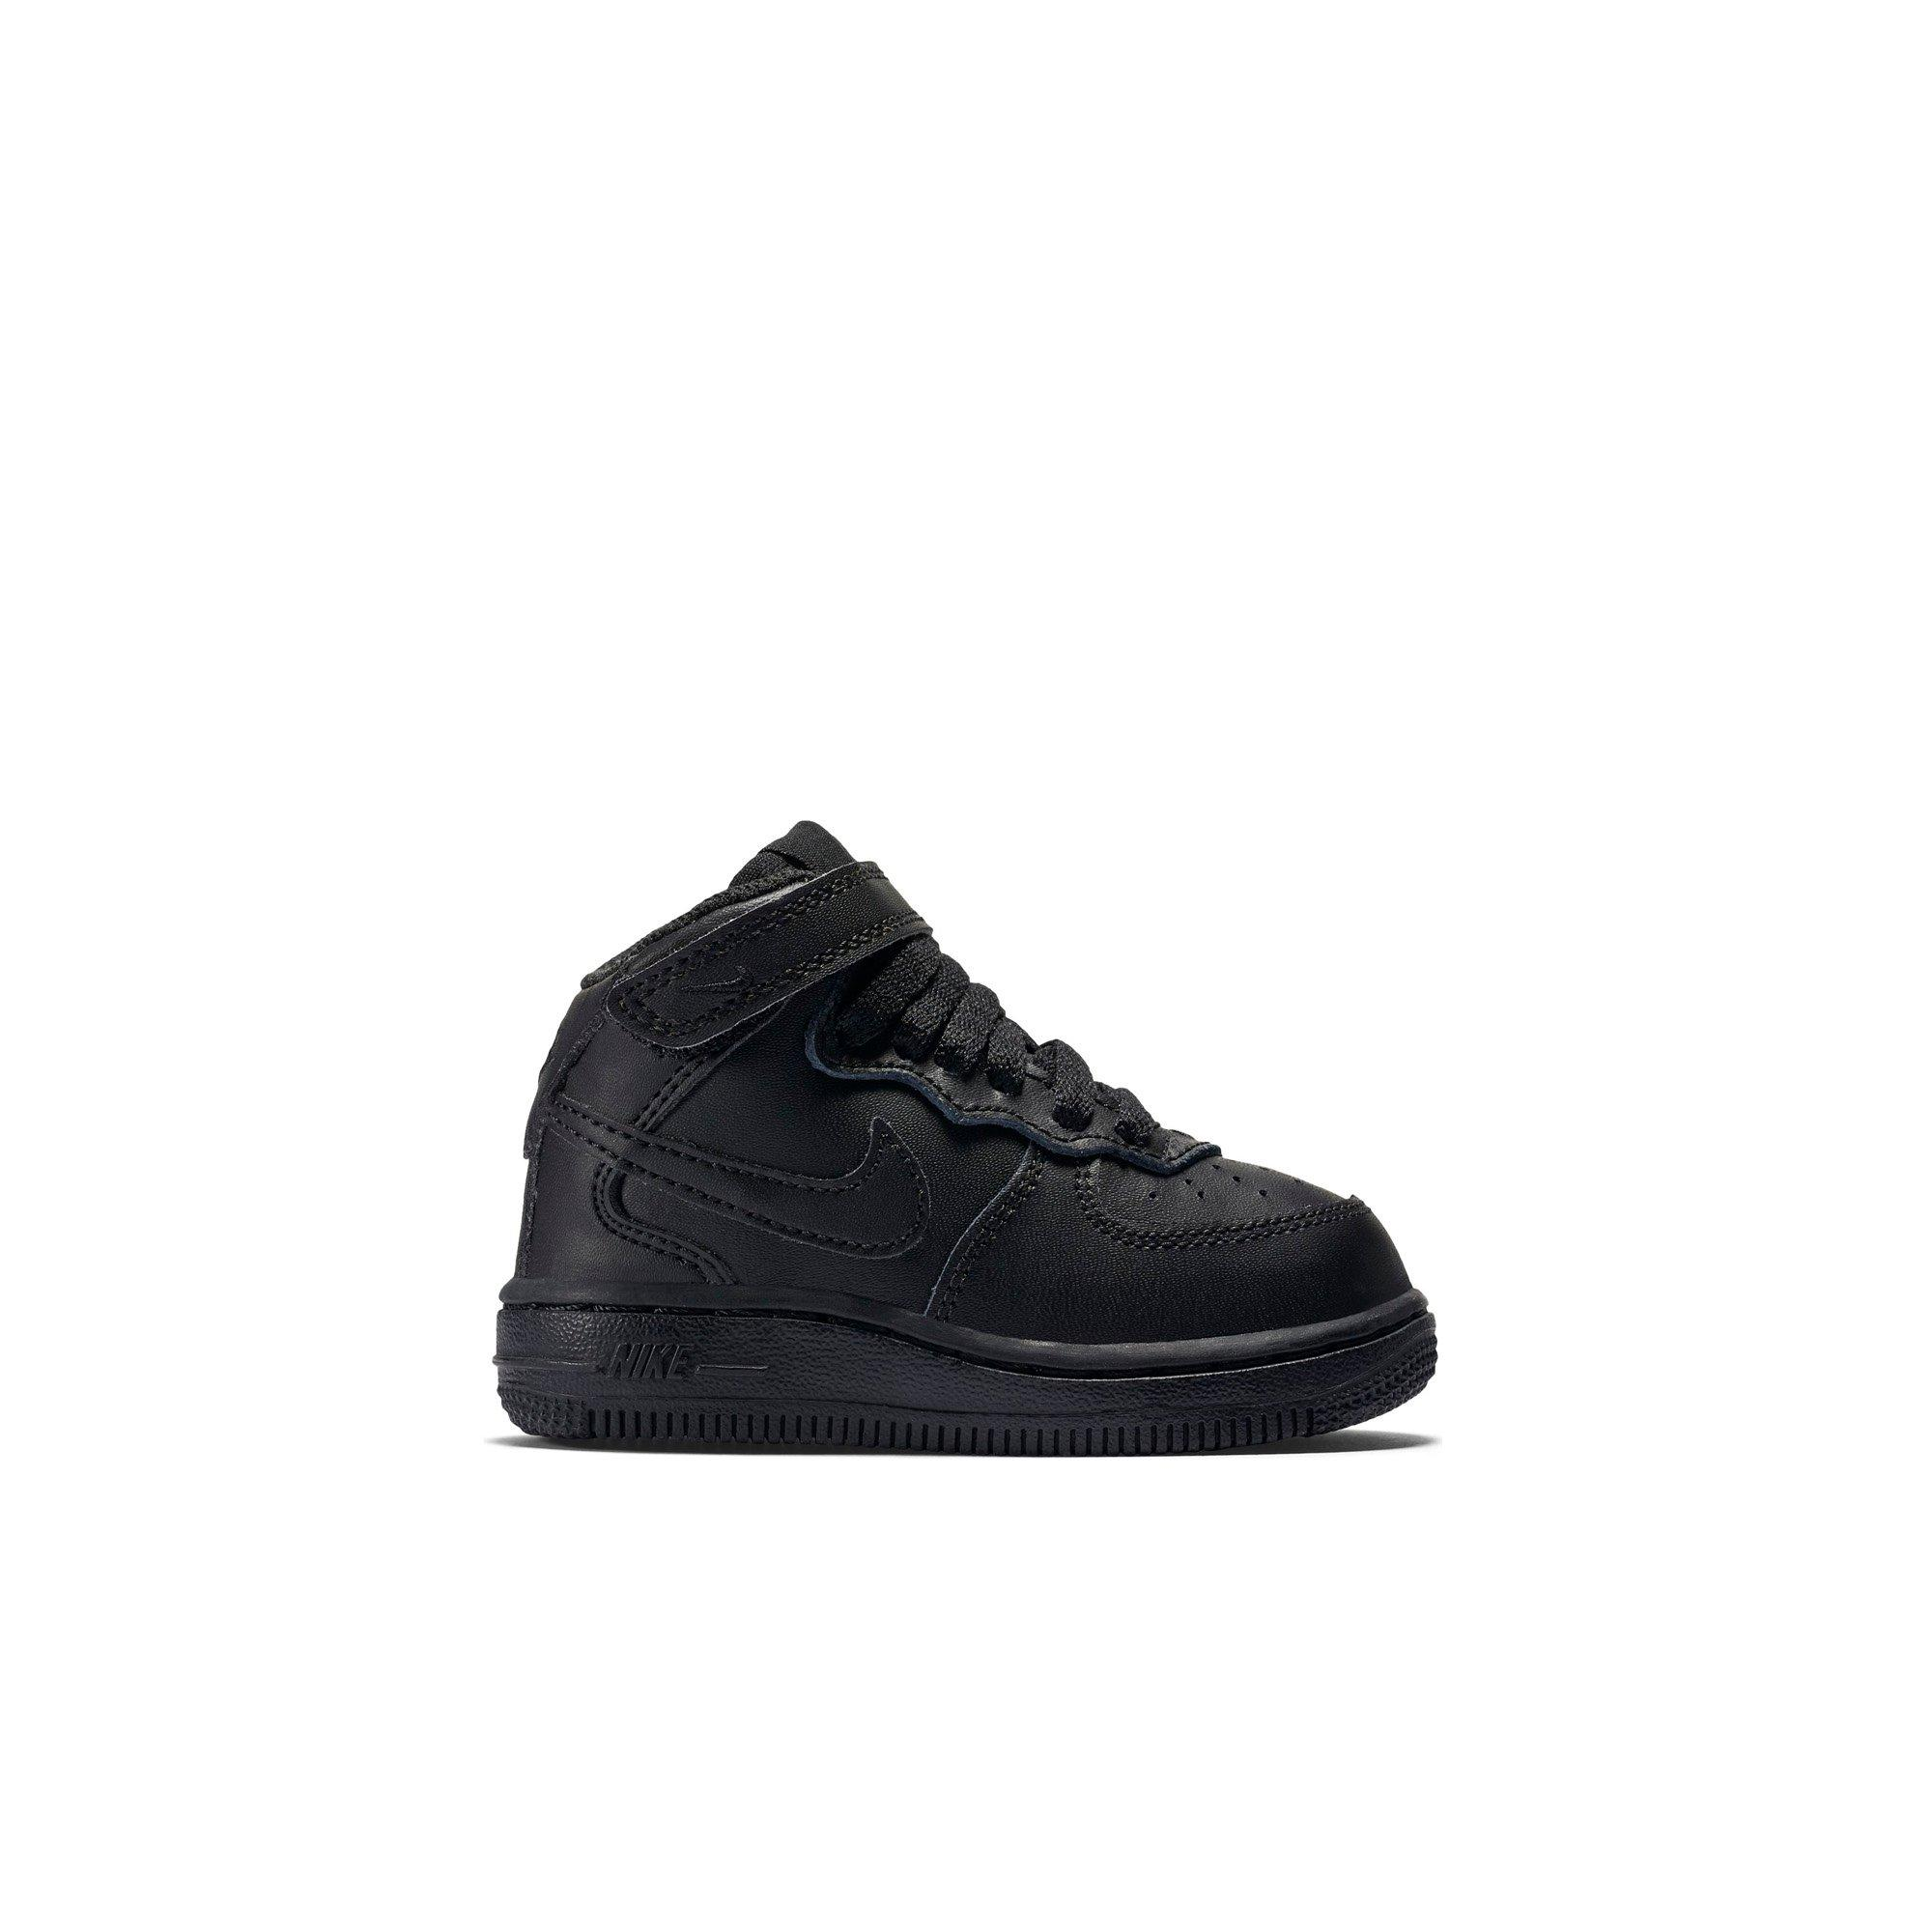 62ed82adbc28 Nike Air Force 1 Mid Toddler Kids u0027 Basketball Shoes - Main Container  Image 1